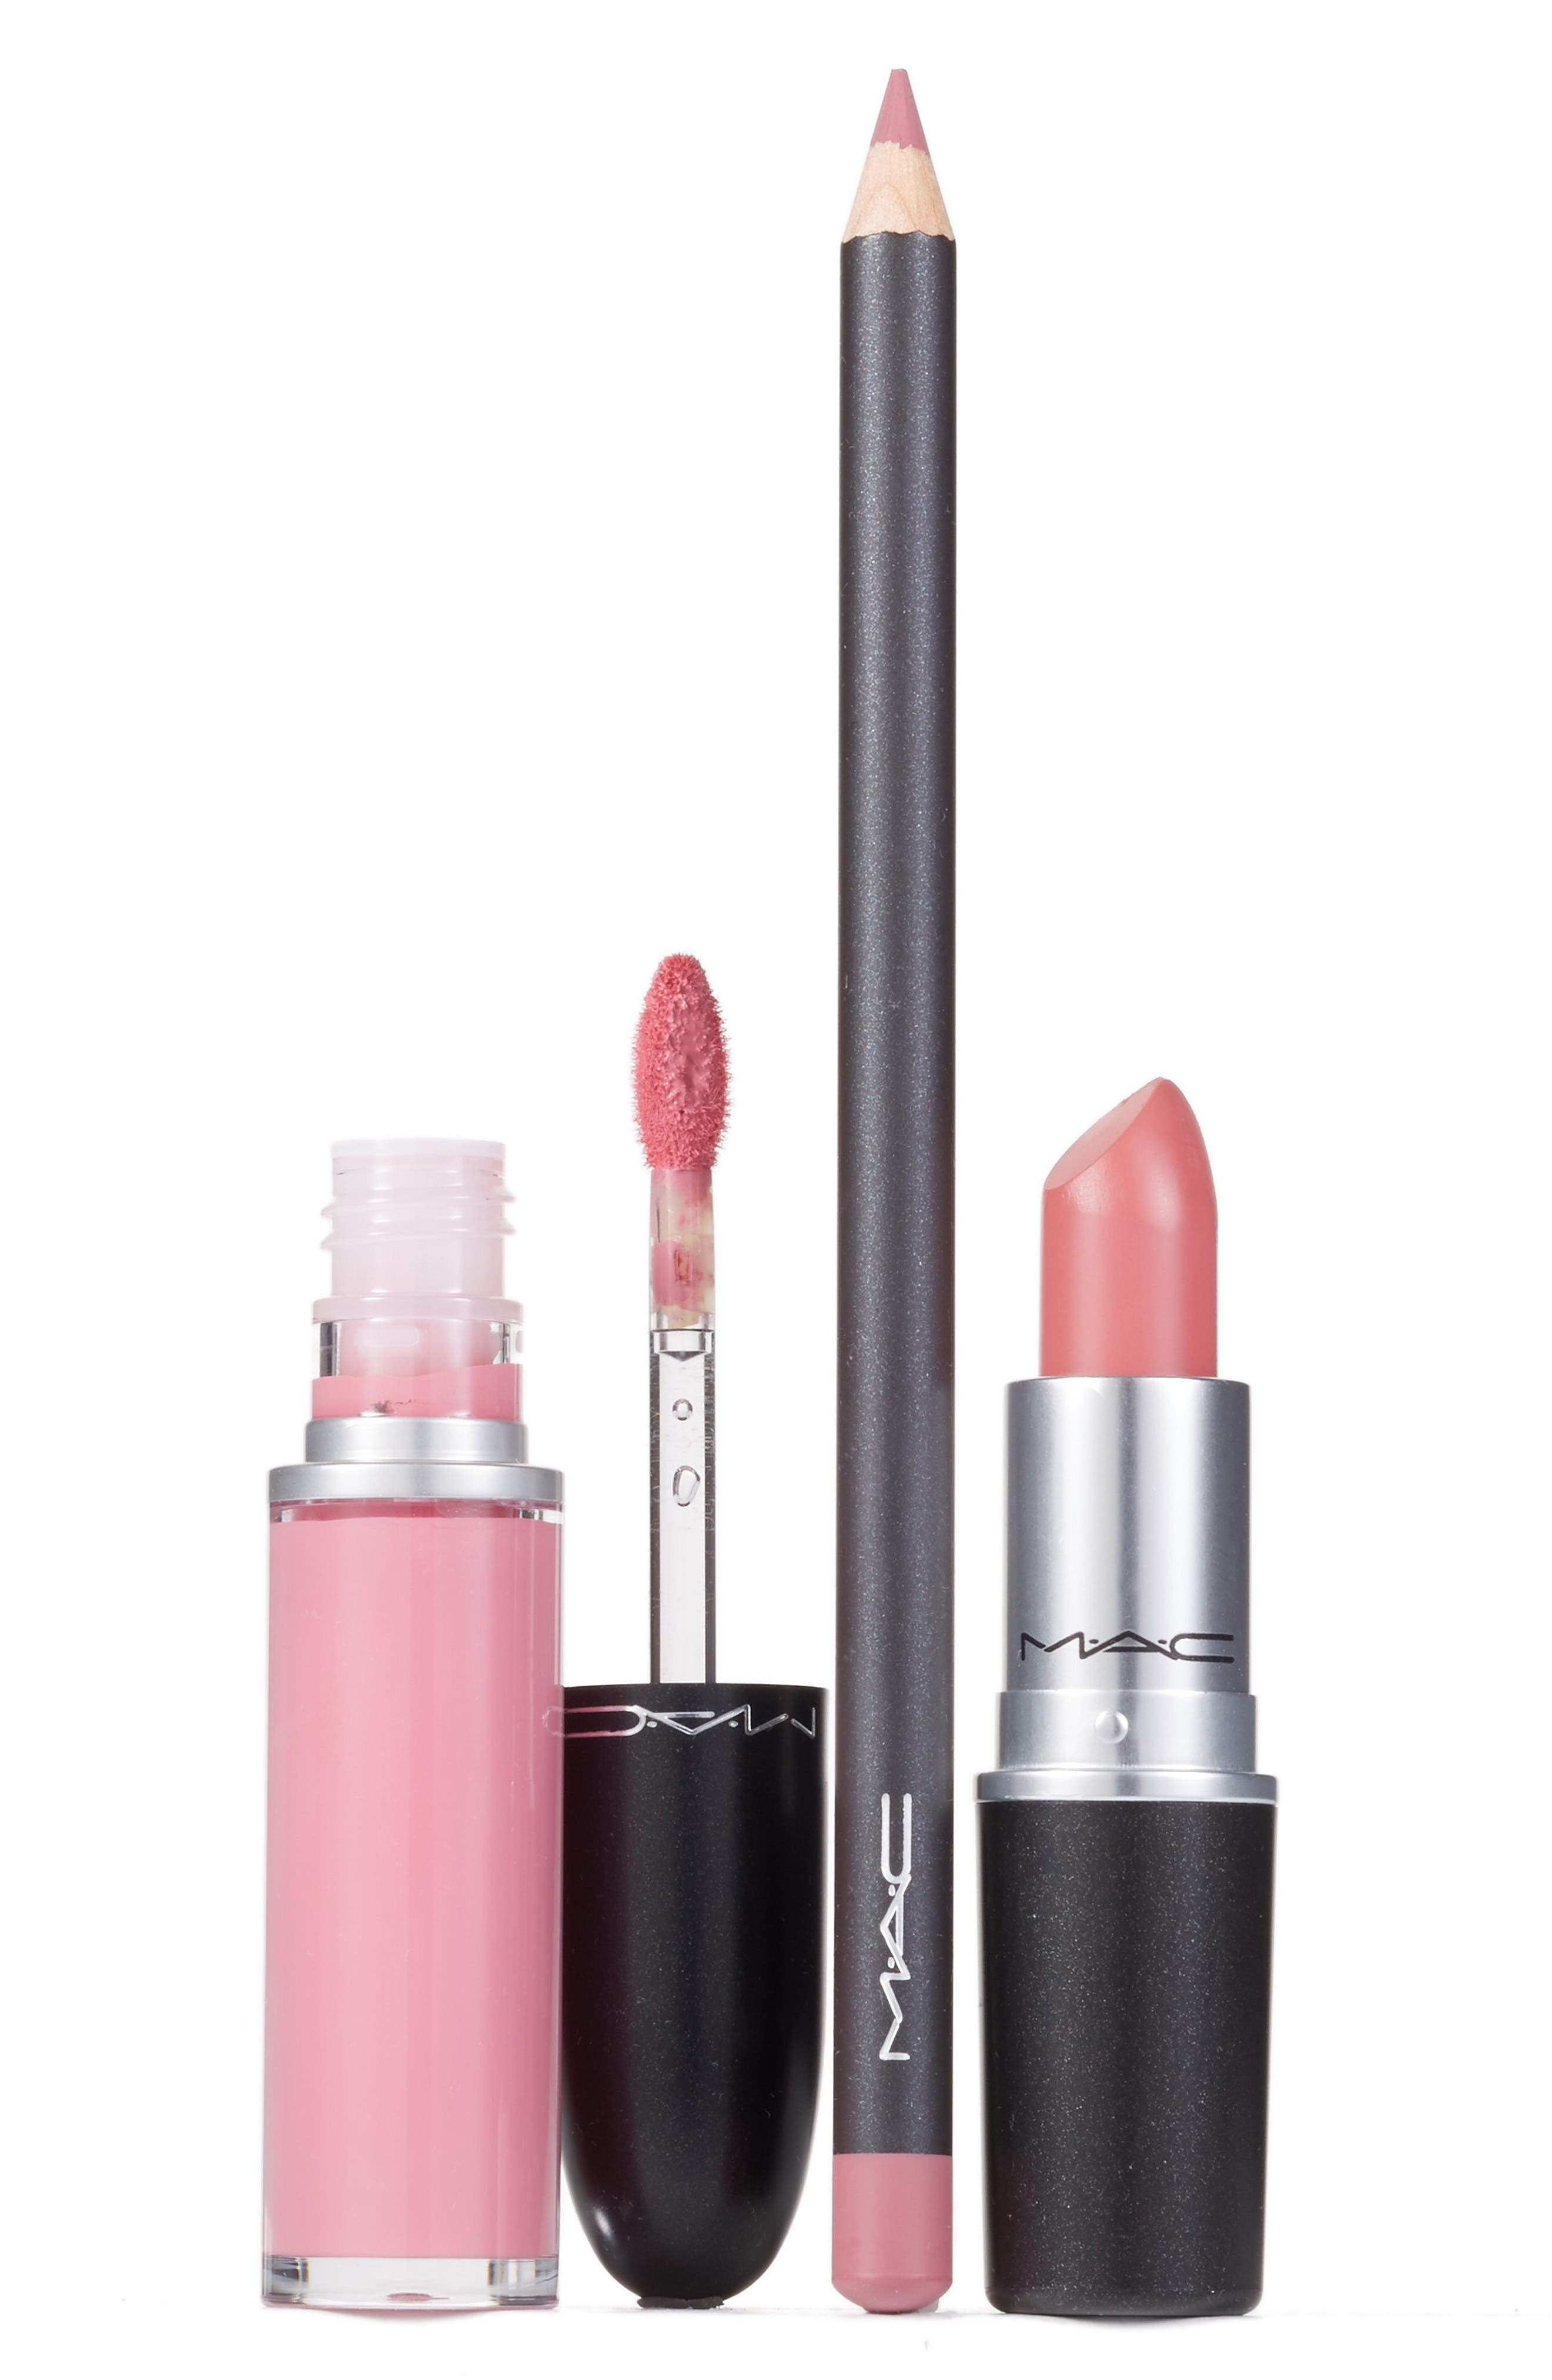 MAC Pink Lip Kit (Nordstrom Exclusive) ($55.50 Value)